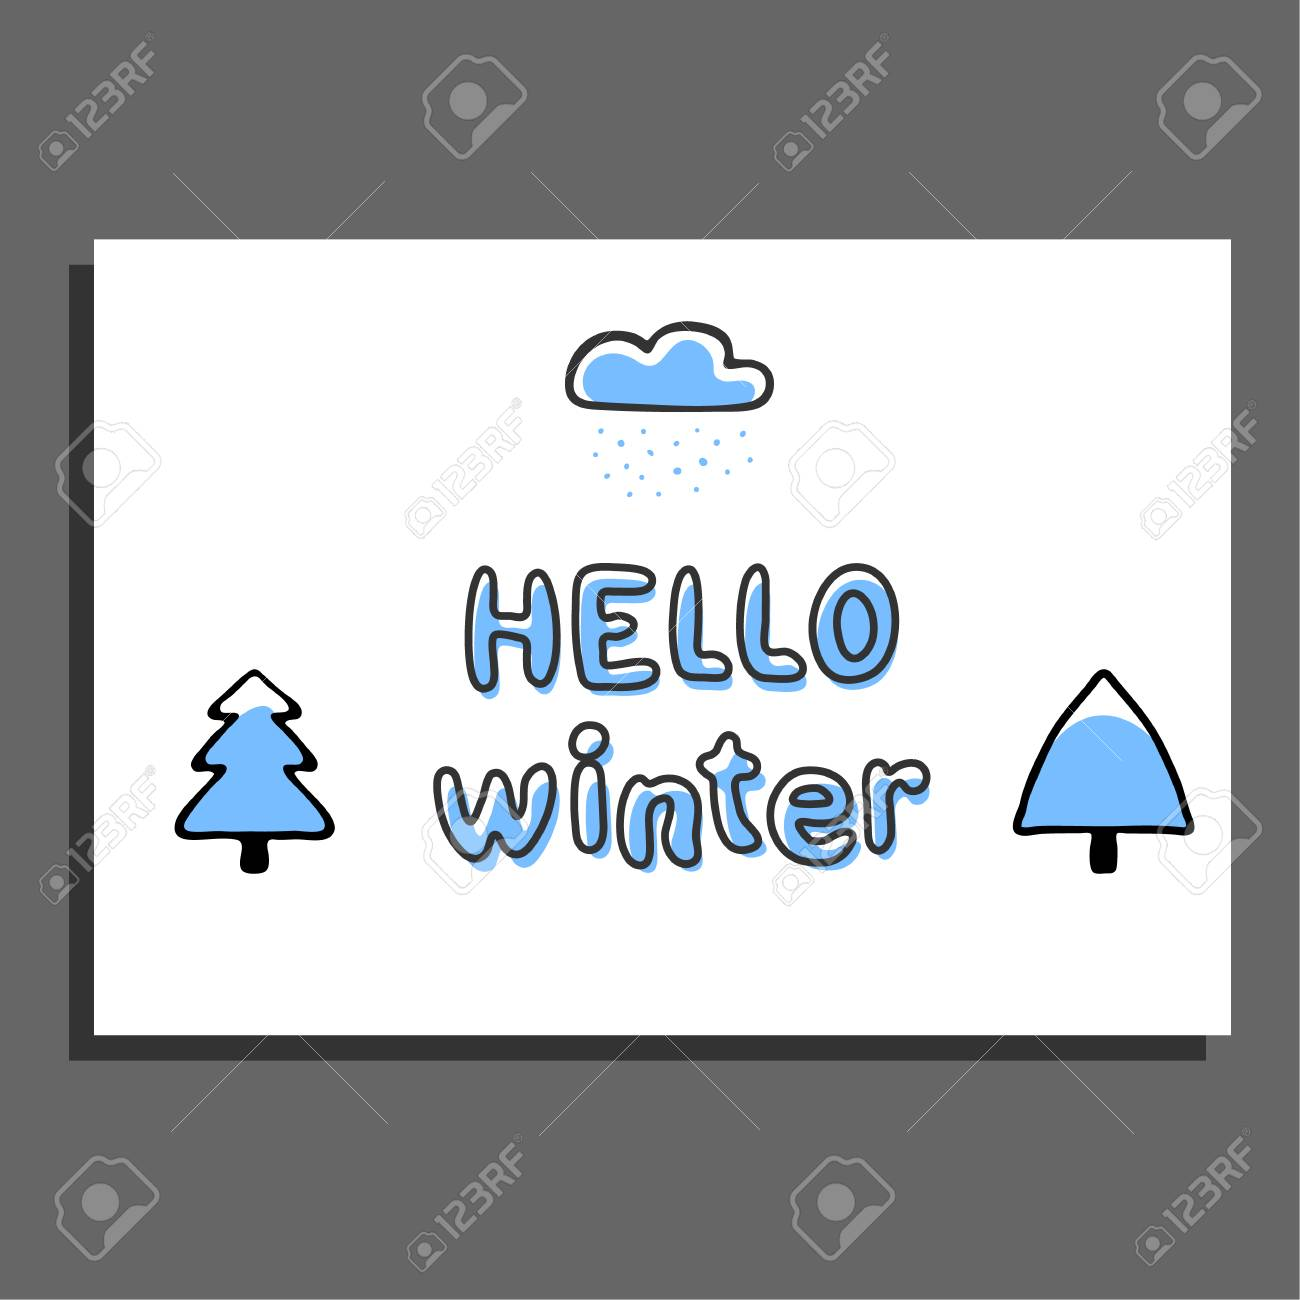 Hello Winter Greeting Card With Cloud And Snow Capped Trees